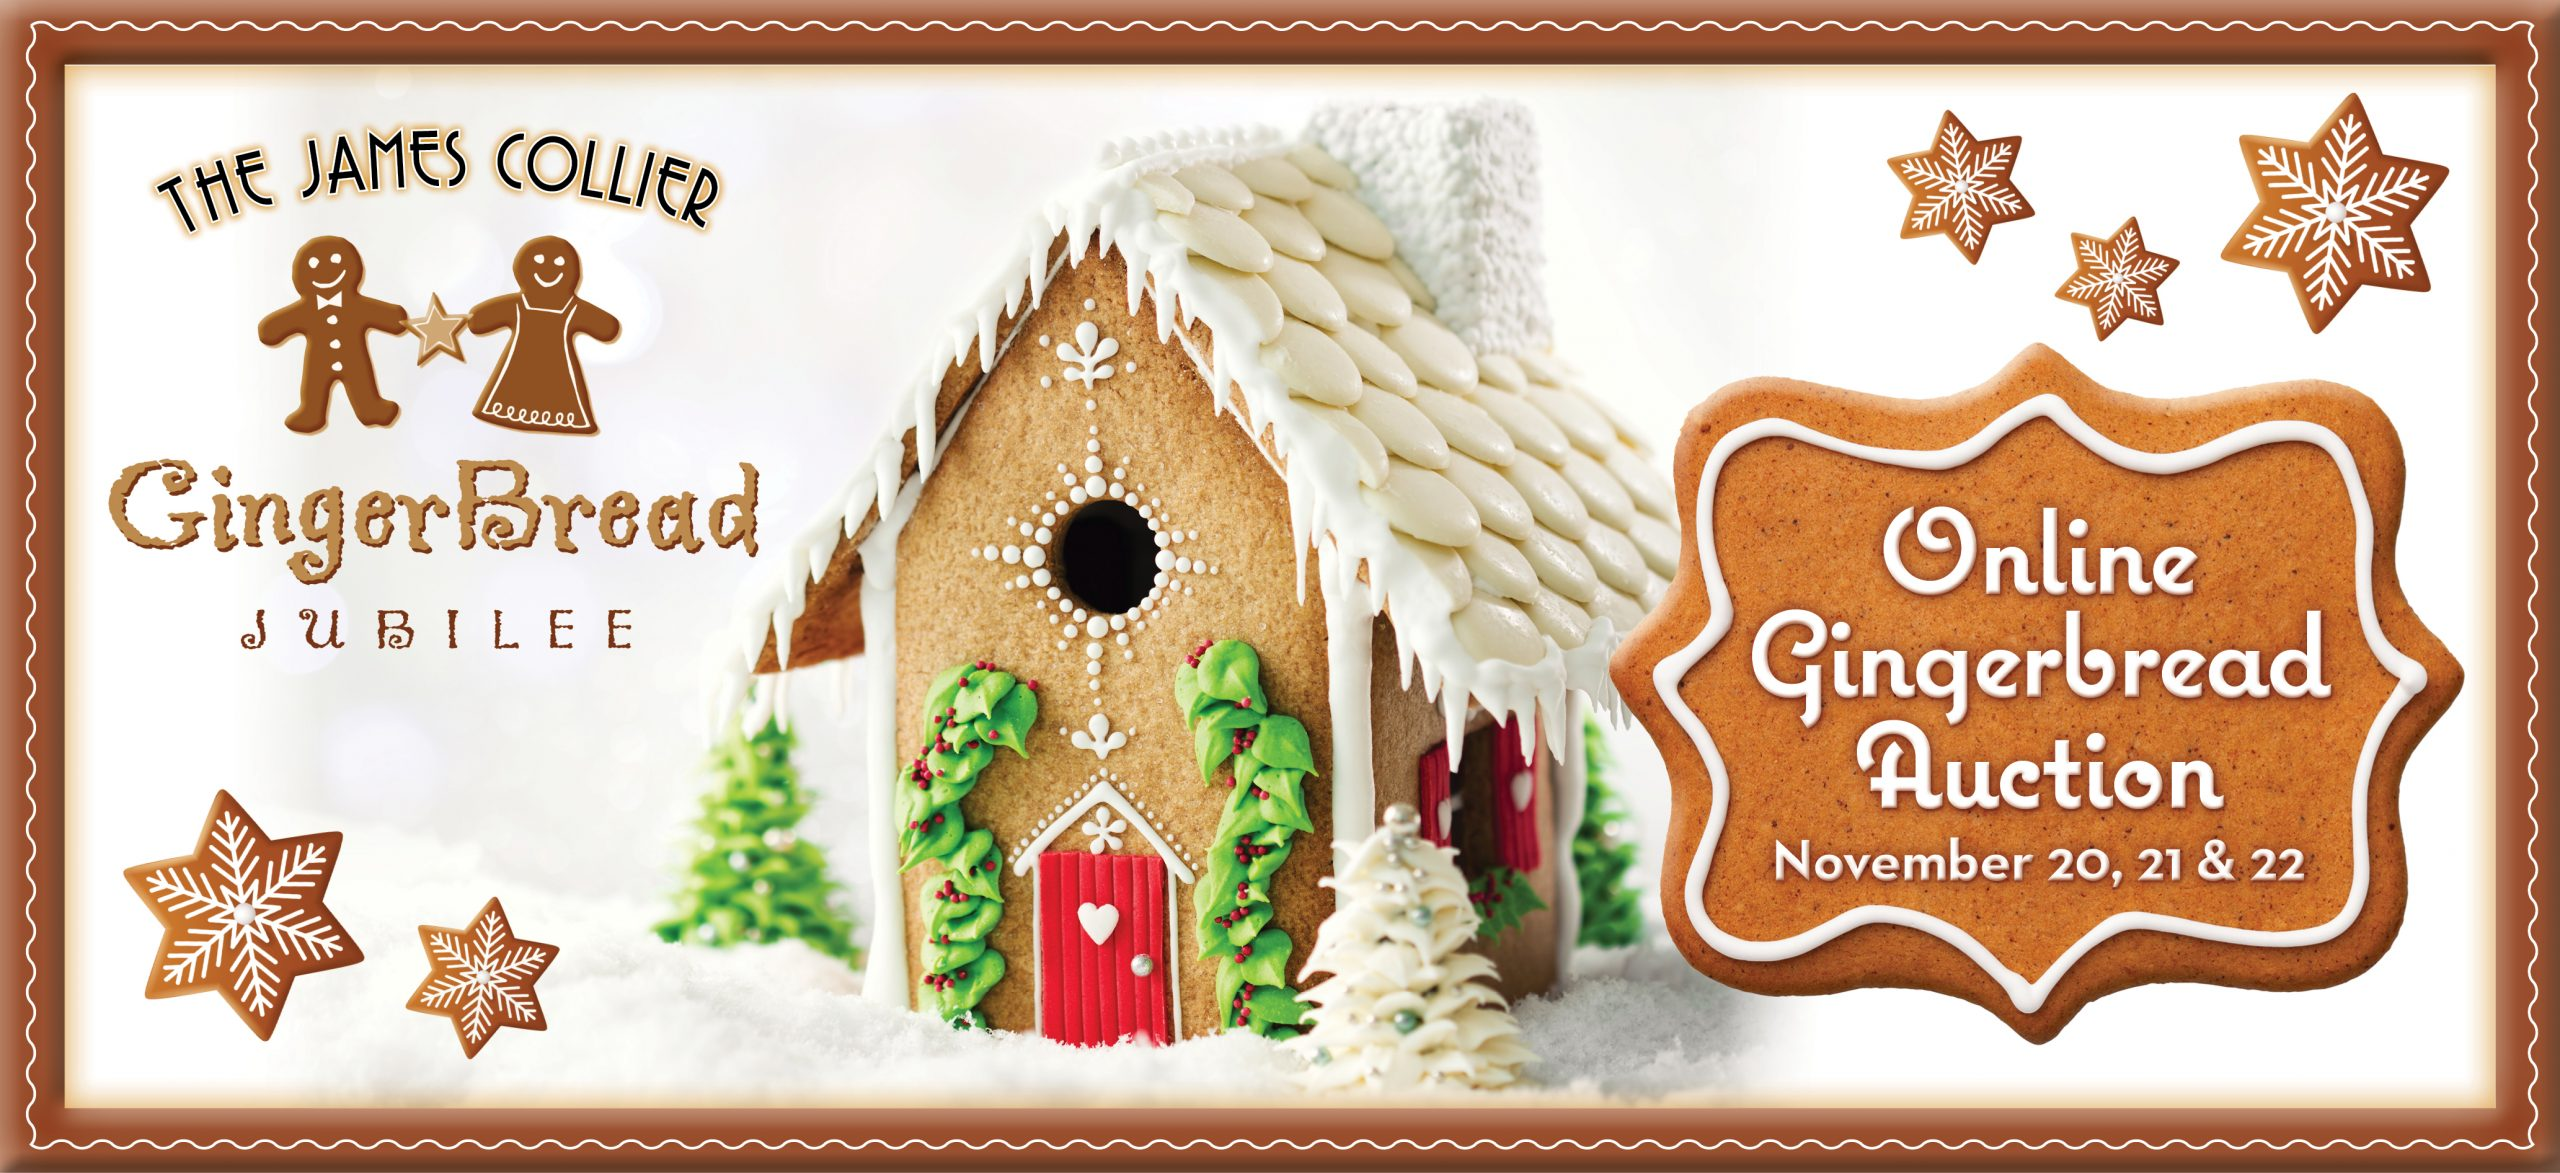 James Collier GingerBread Jubiless - Gingerbread Online Auction Nov. 20, 21, & 22